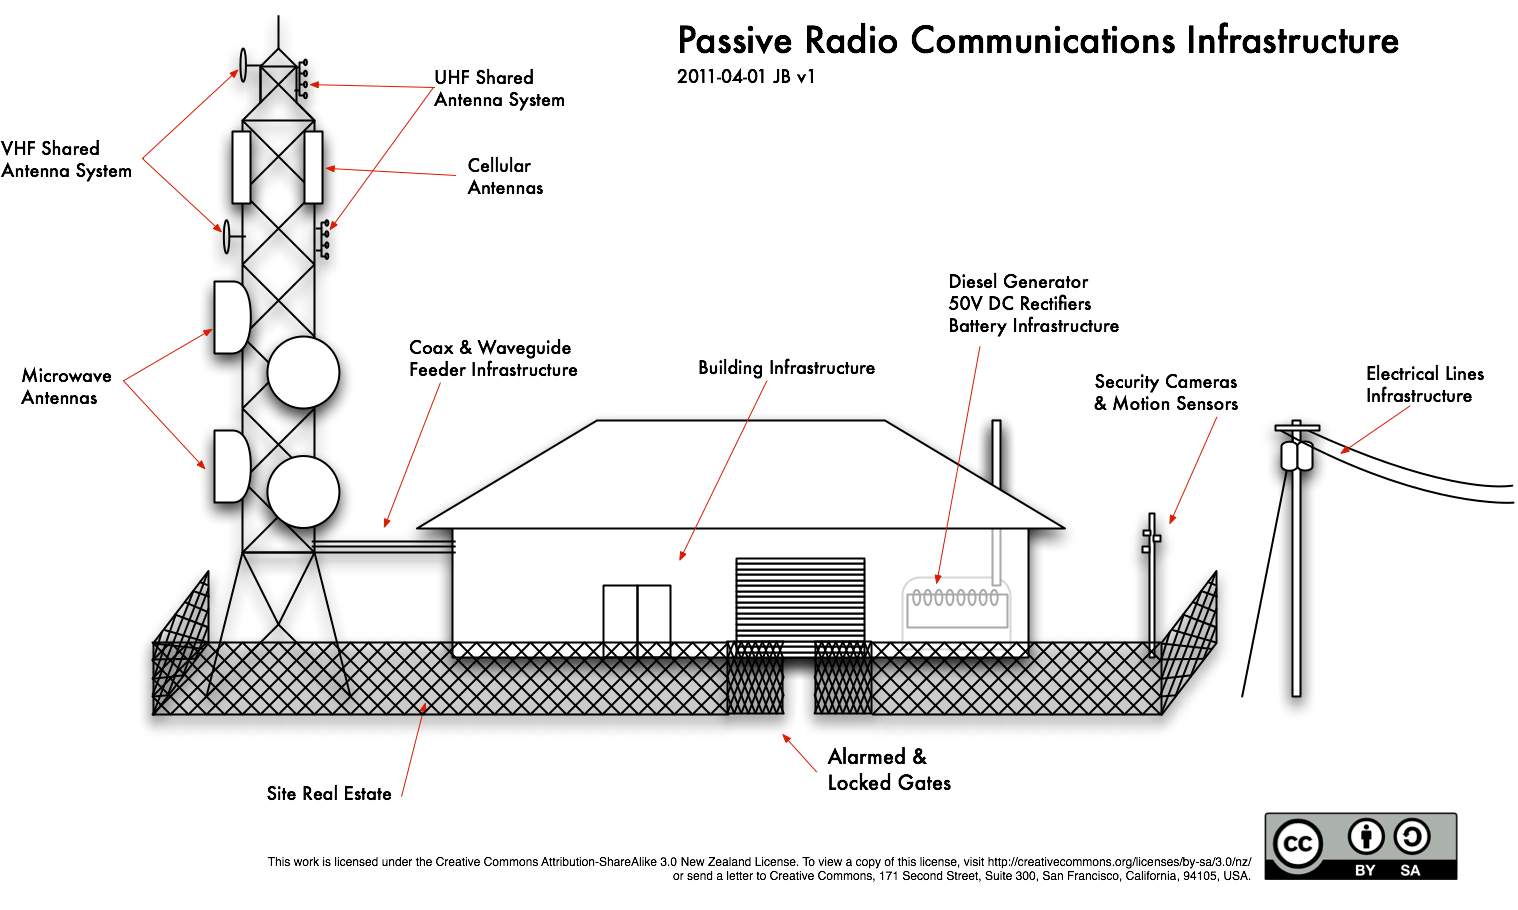 cellular phone tower signal diagram trailer lights wiring 6 pin connector mobile infrastructure sharing co location